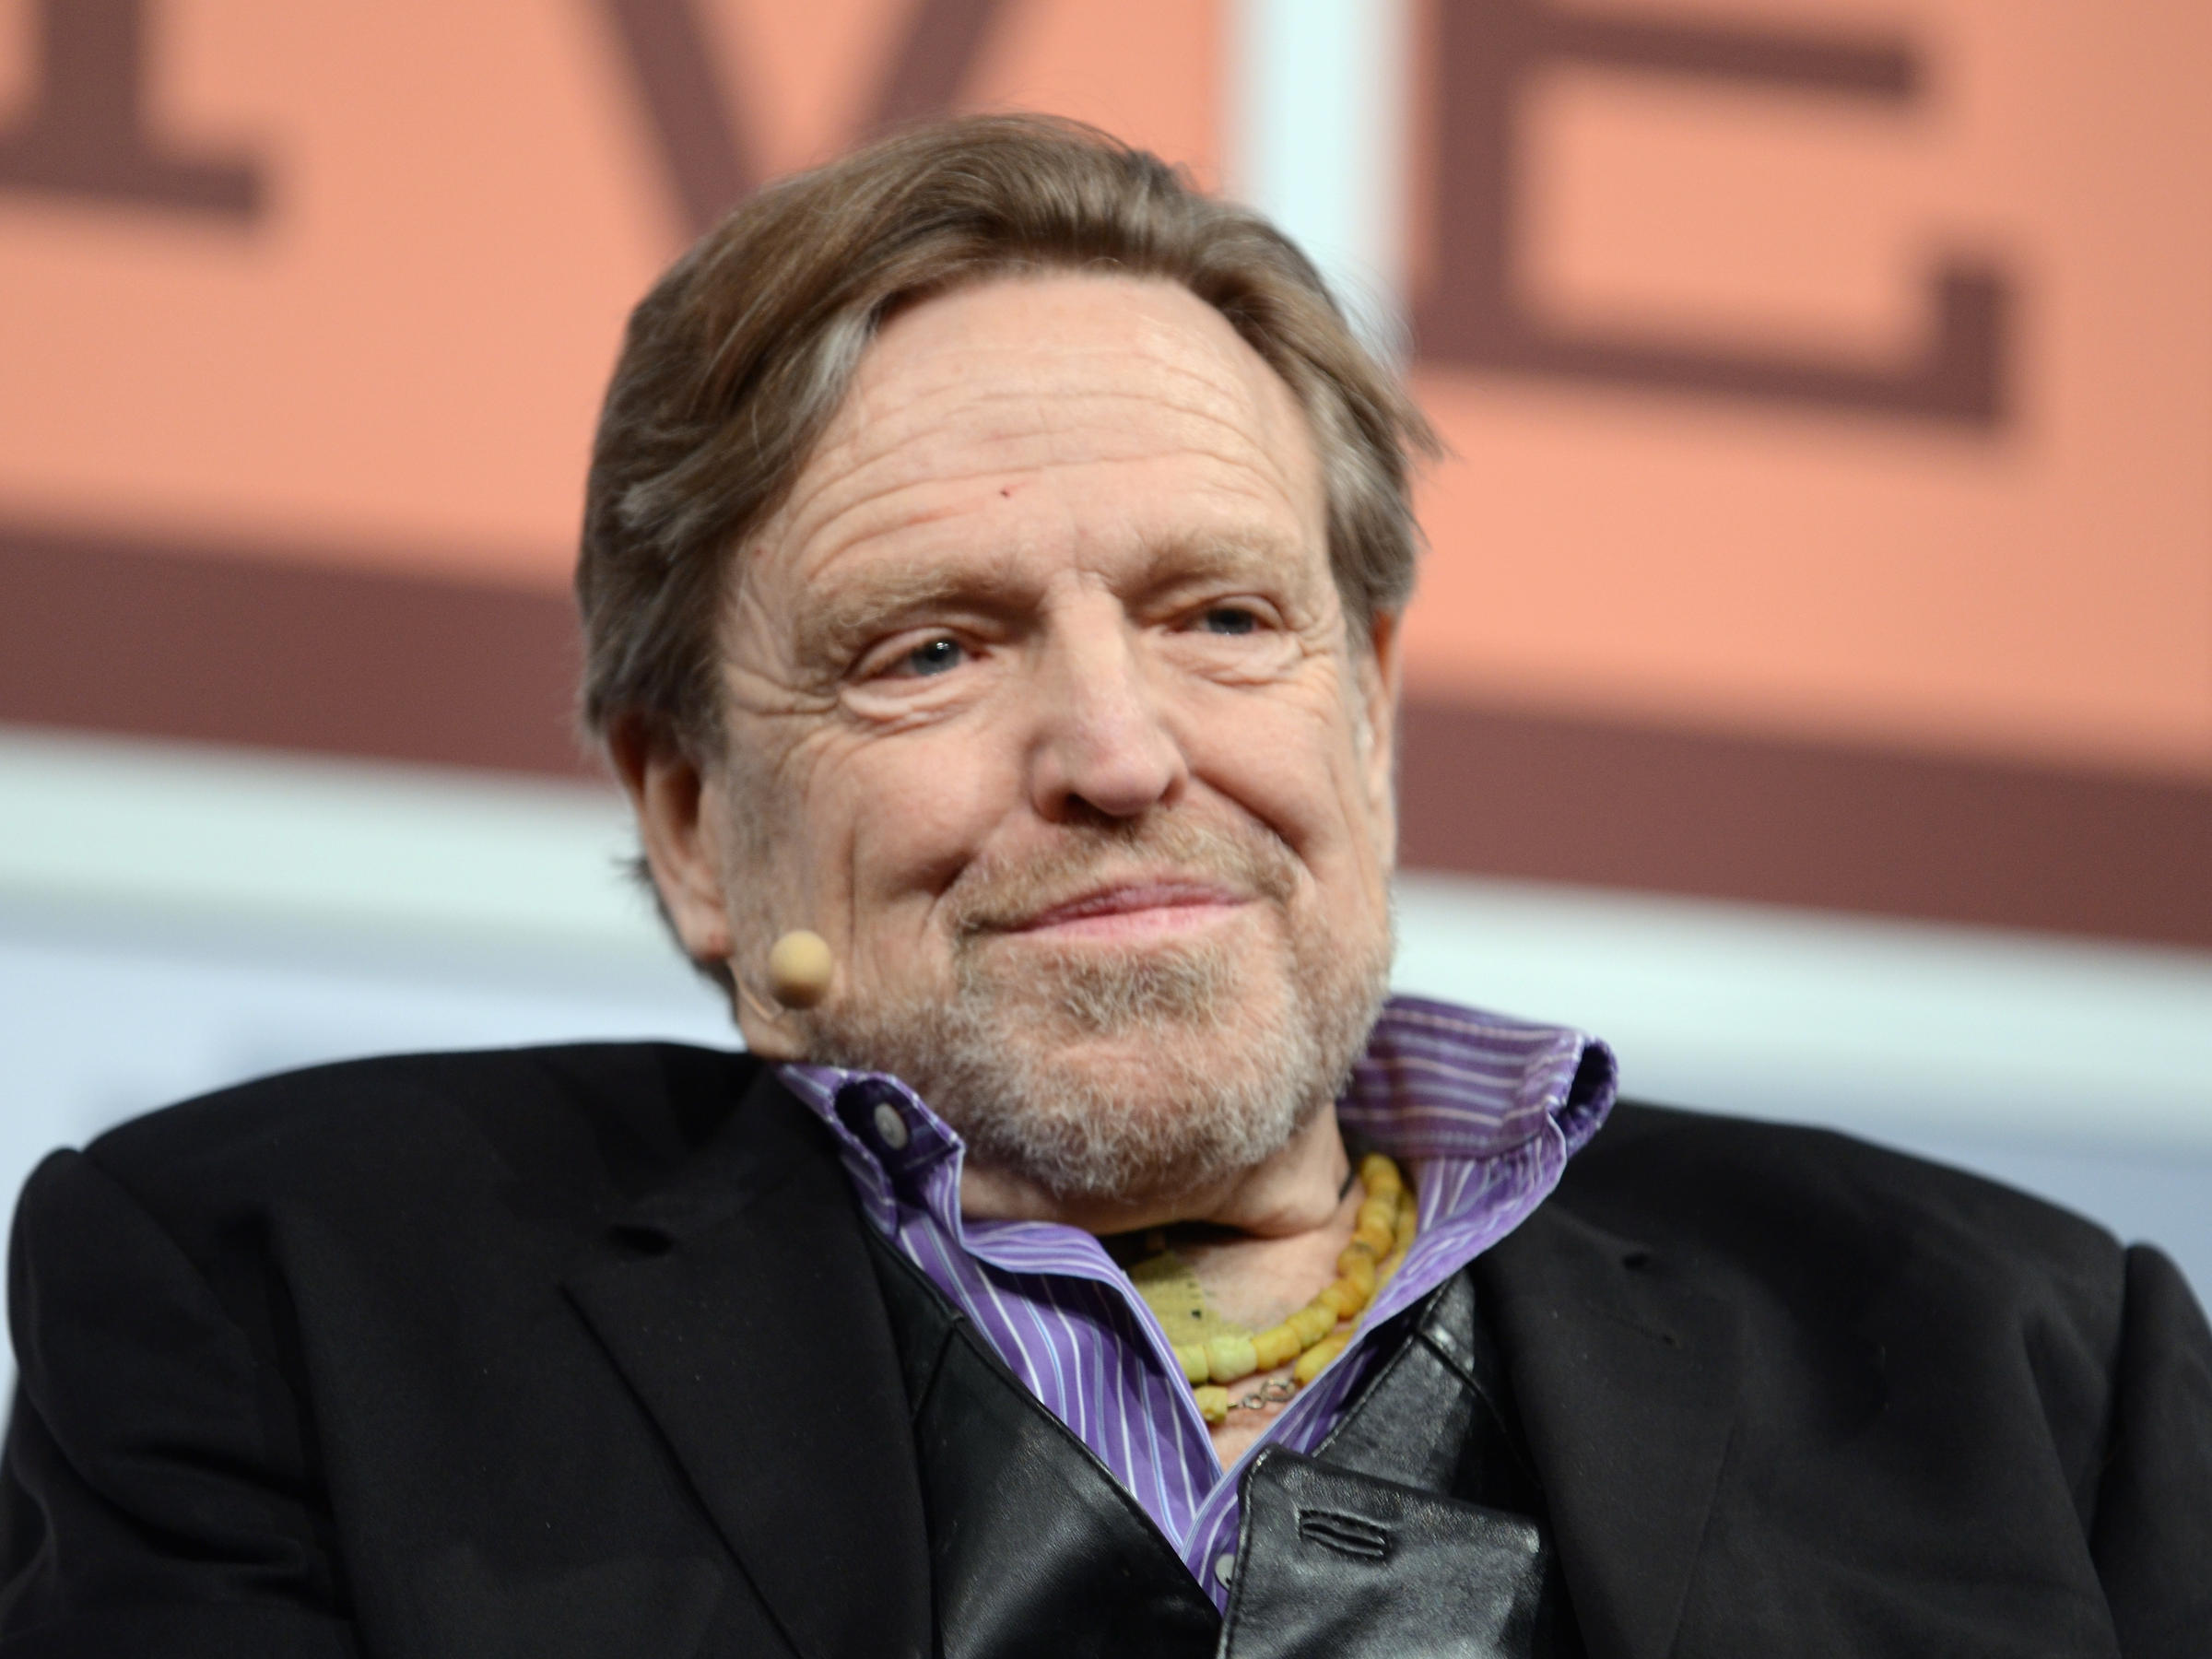 Grateful Dead lyricist and Internet advocate John Perry Barlow dead at 70